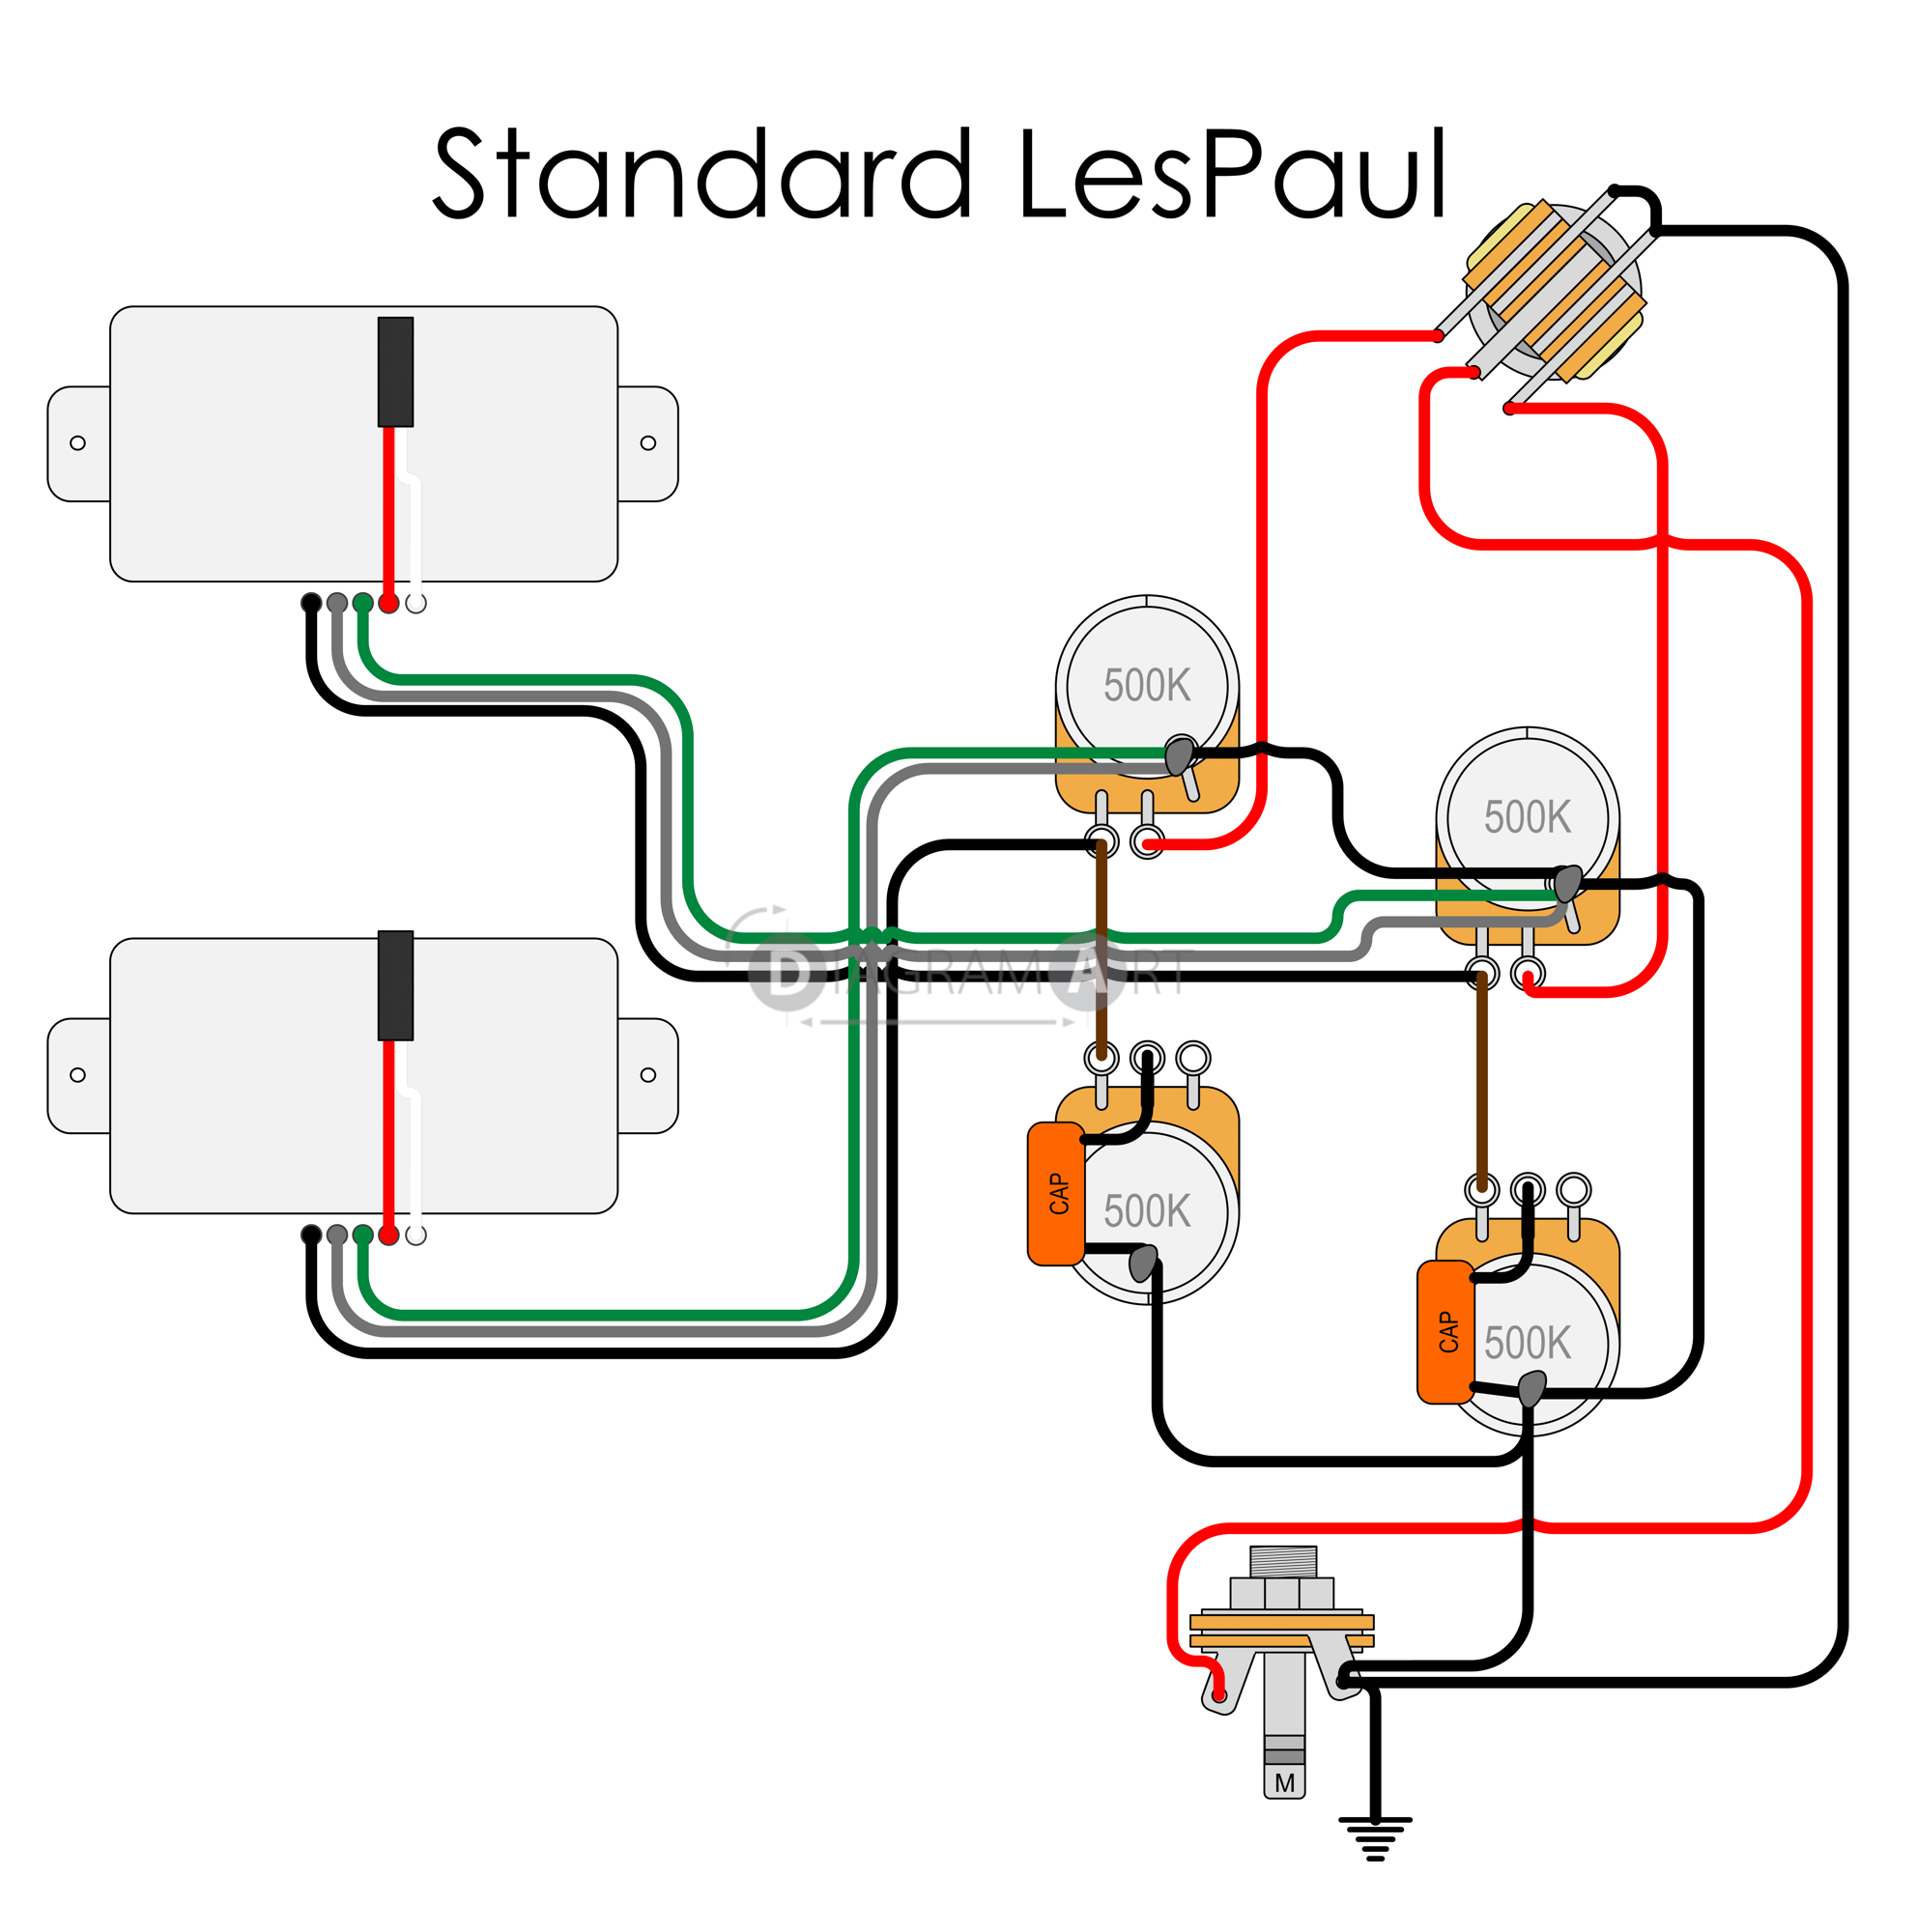 Dh 8210 Epiphone Les Paul Wiring Schematic